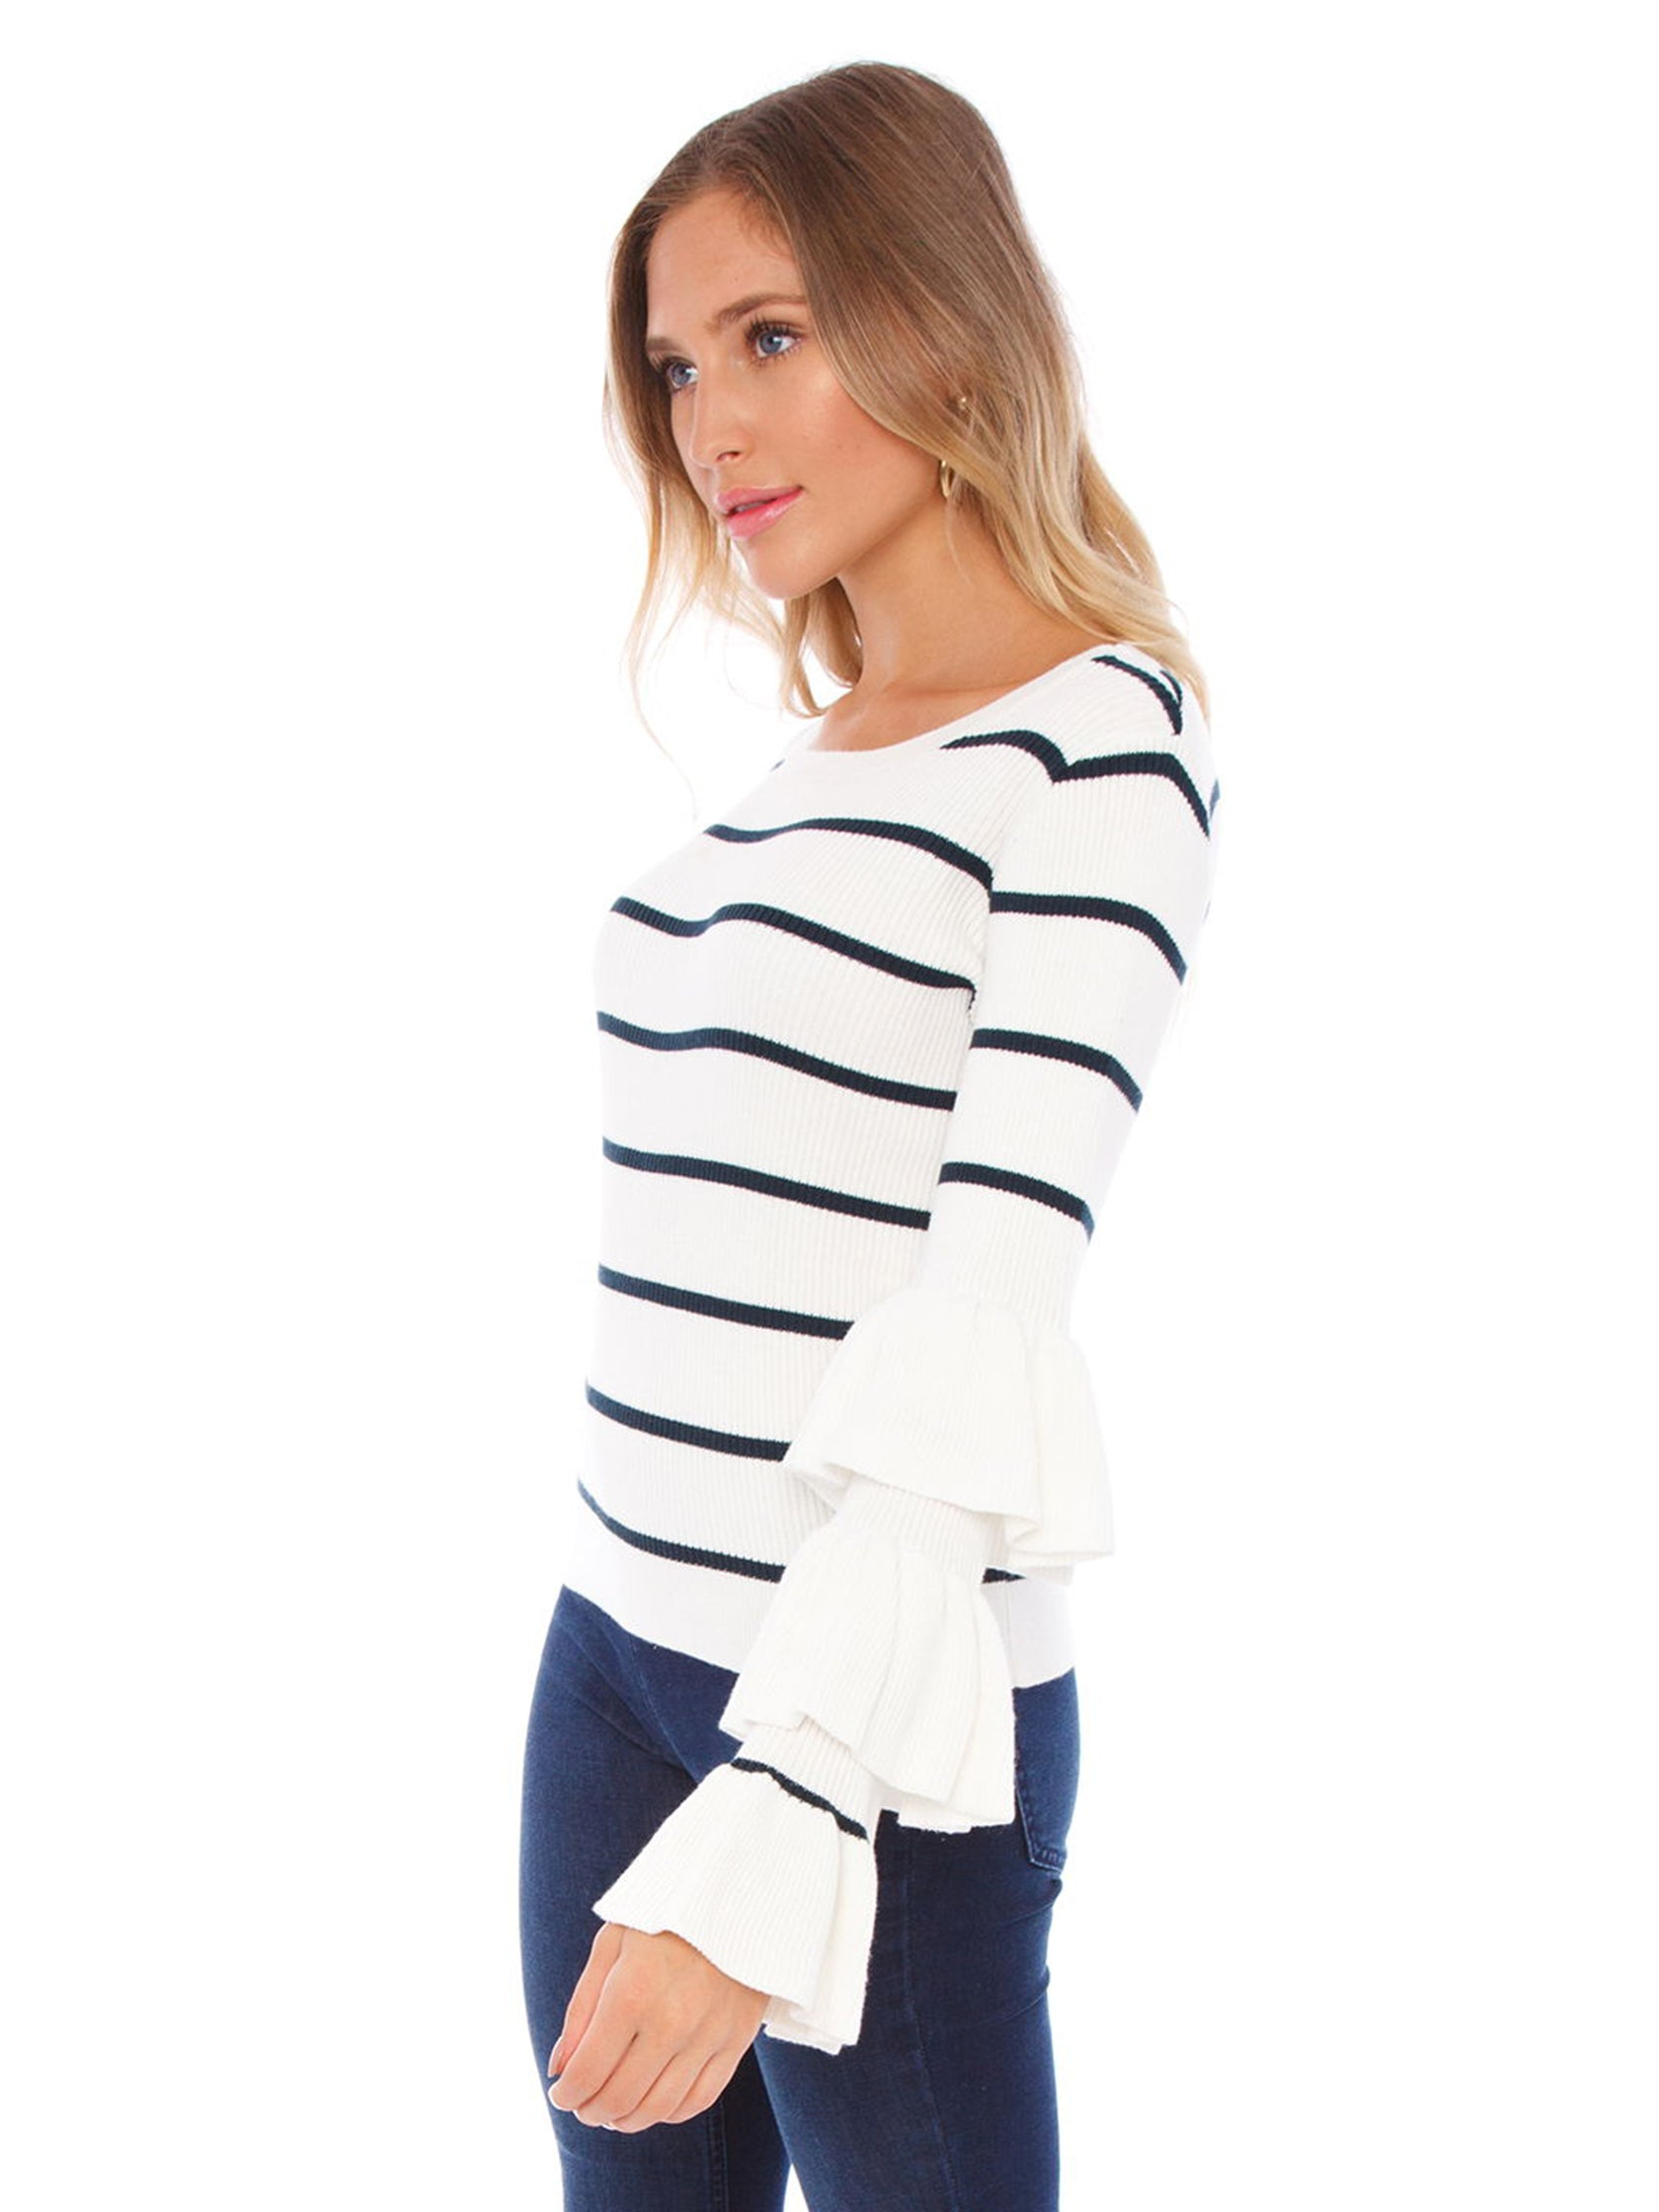 Women wearing a sweater rental from Chaser called Ruffle Sleeve Striped Sweater